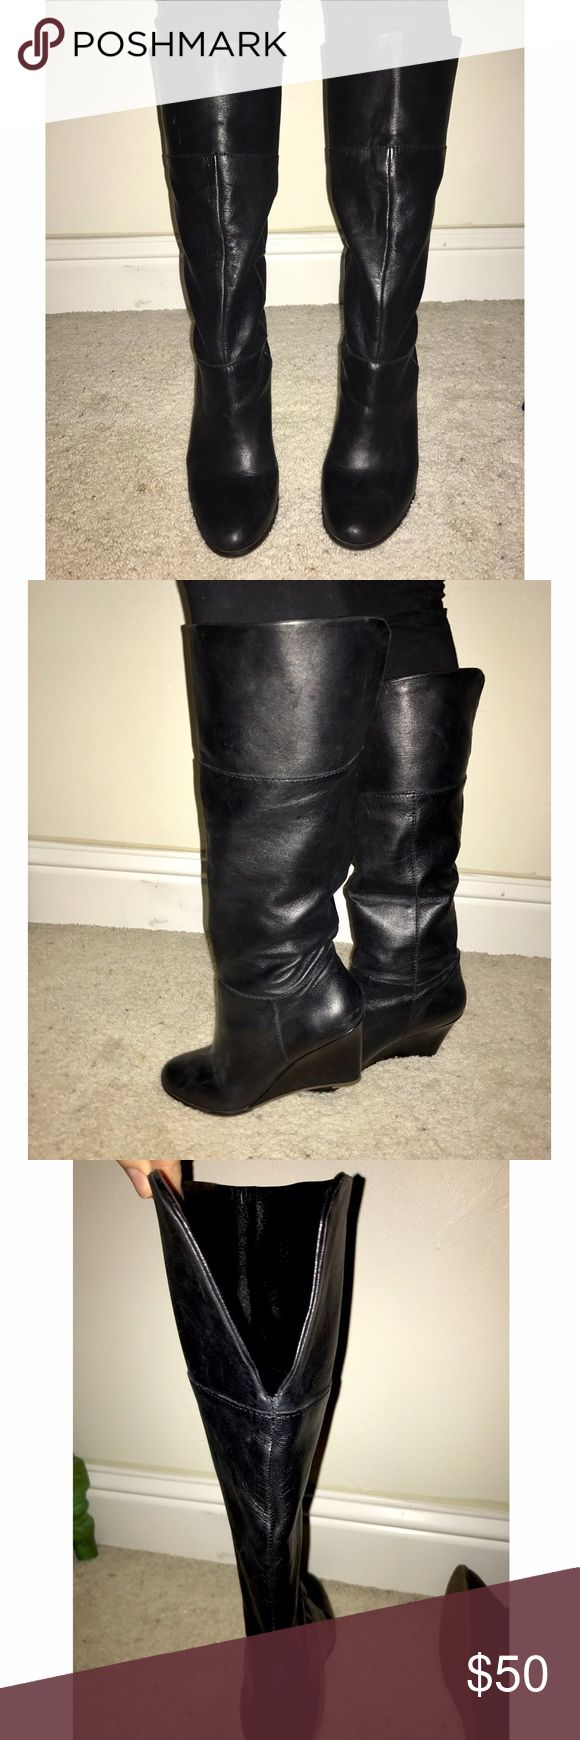 Steven by Steve Madden black boots Soft inside, true to size, worn less than 3 times, wedged heel, cute with any outfit, the back makes a V and hit right below the knee. Steven by Steve Madden Shoes Heeled Boots